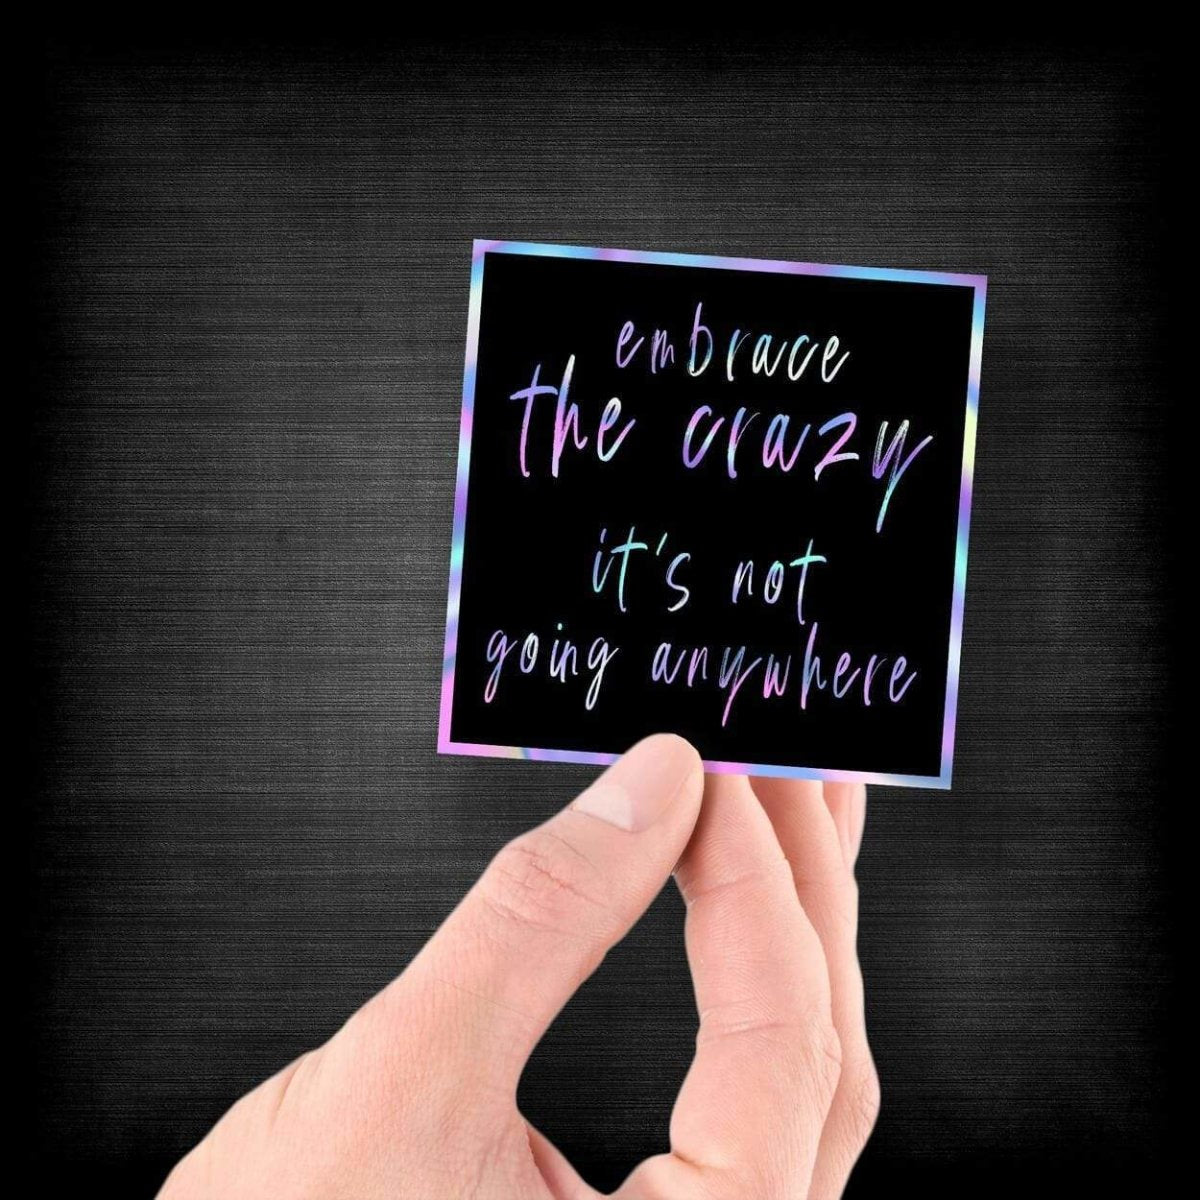 Embrace the Crazy - It's Not Going Anywhere - Hologram Sticker - Dan Pearce Sticker Shop